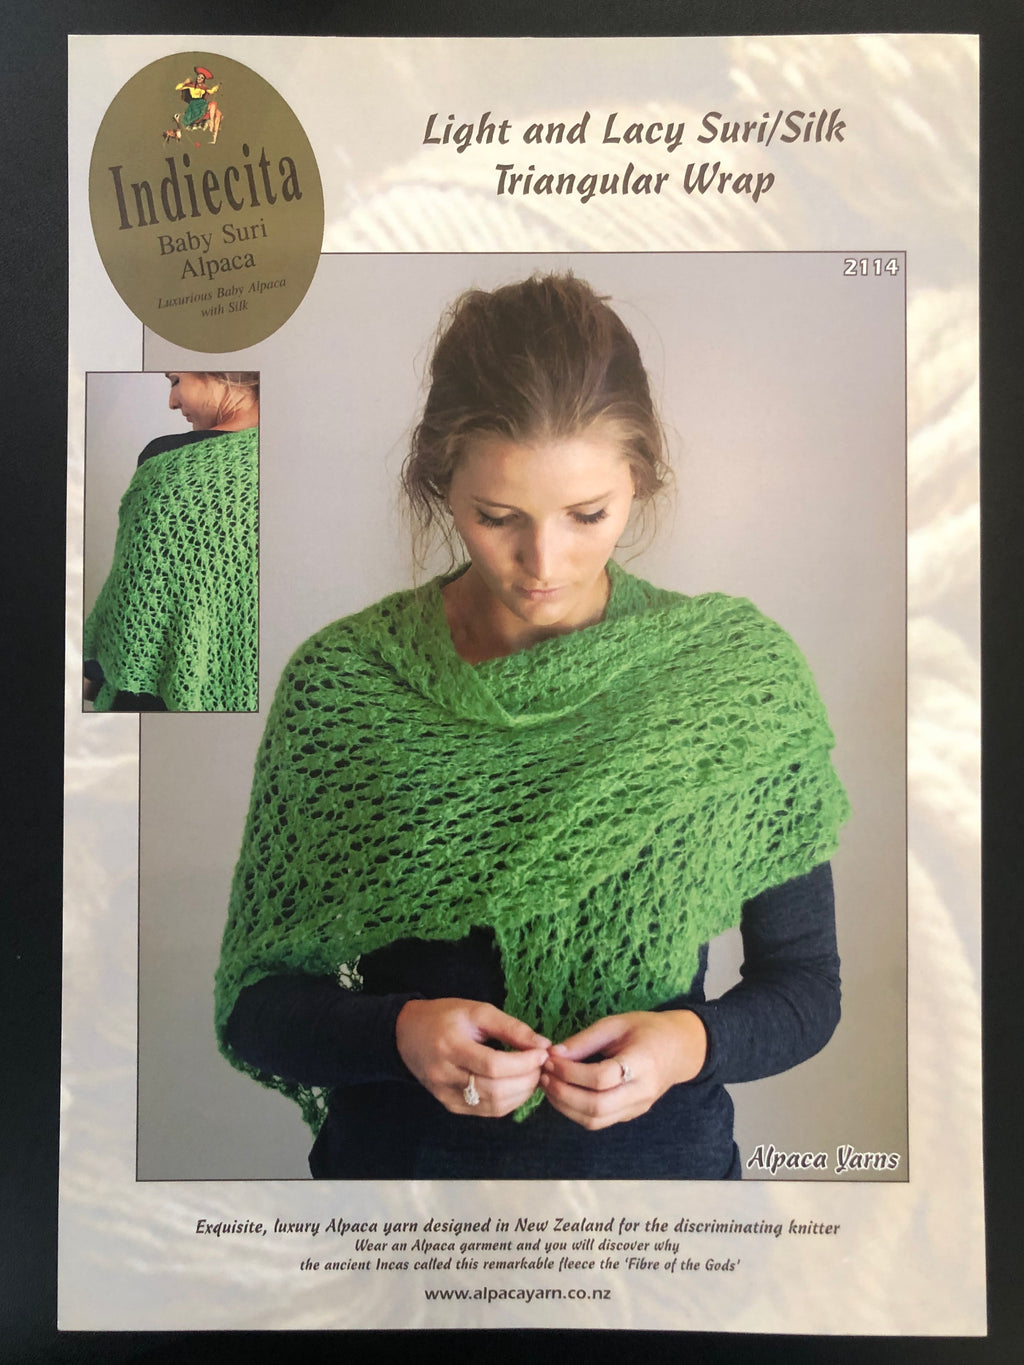 Light and Lacy Triangular Wrap in Indiecita Baby Suri Alpaca-Pattern-2114 - The Mulberry Tree at Milton